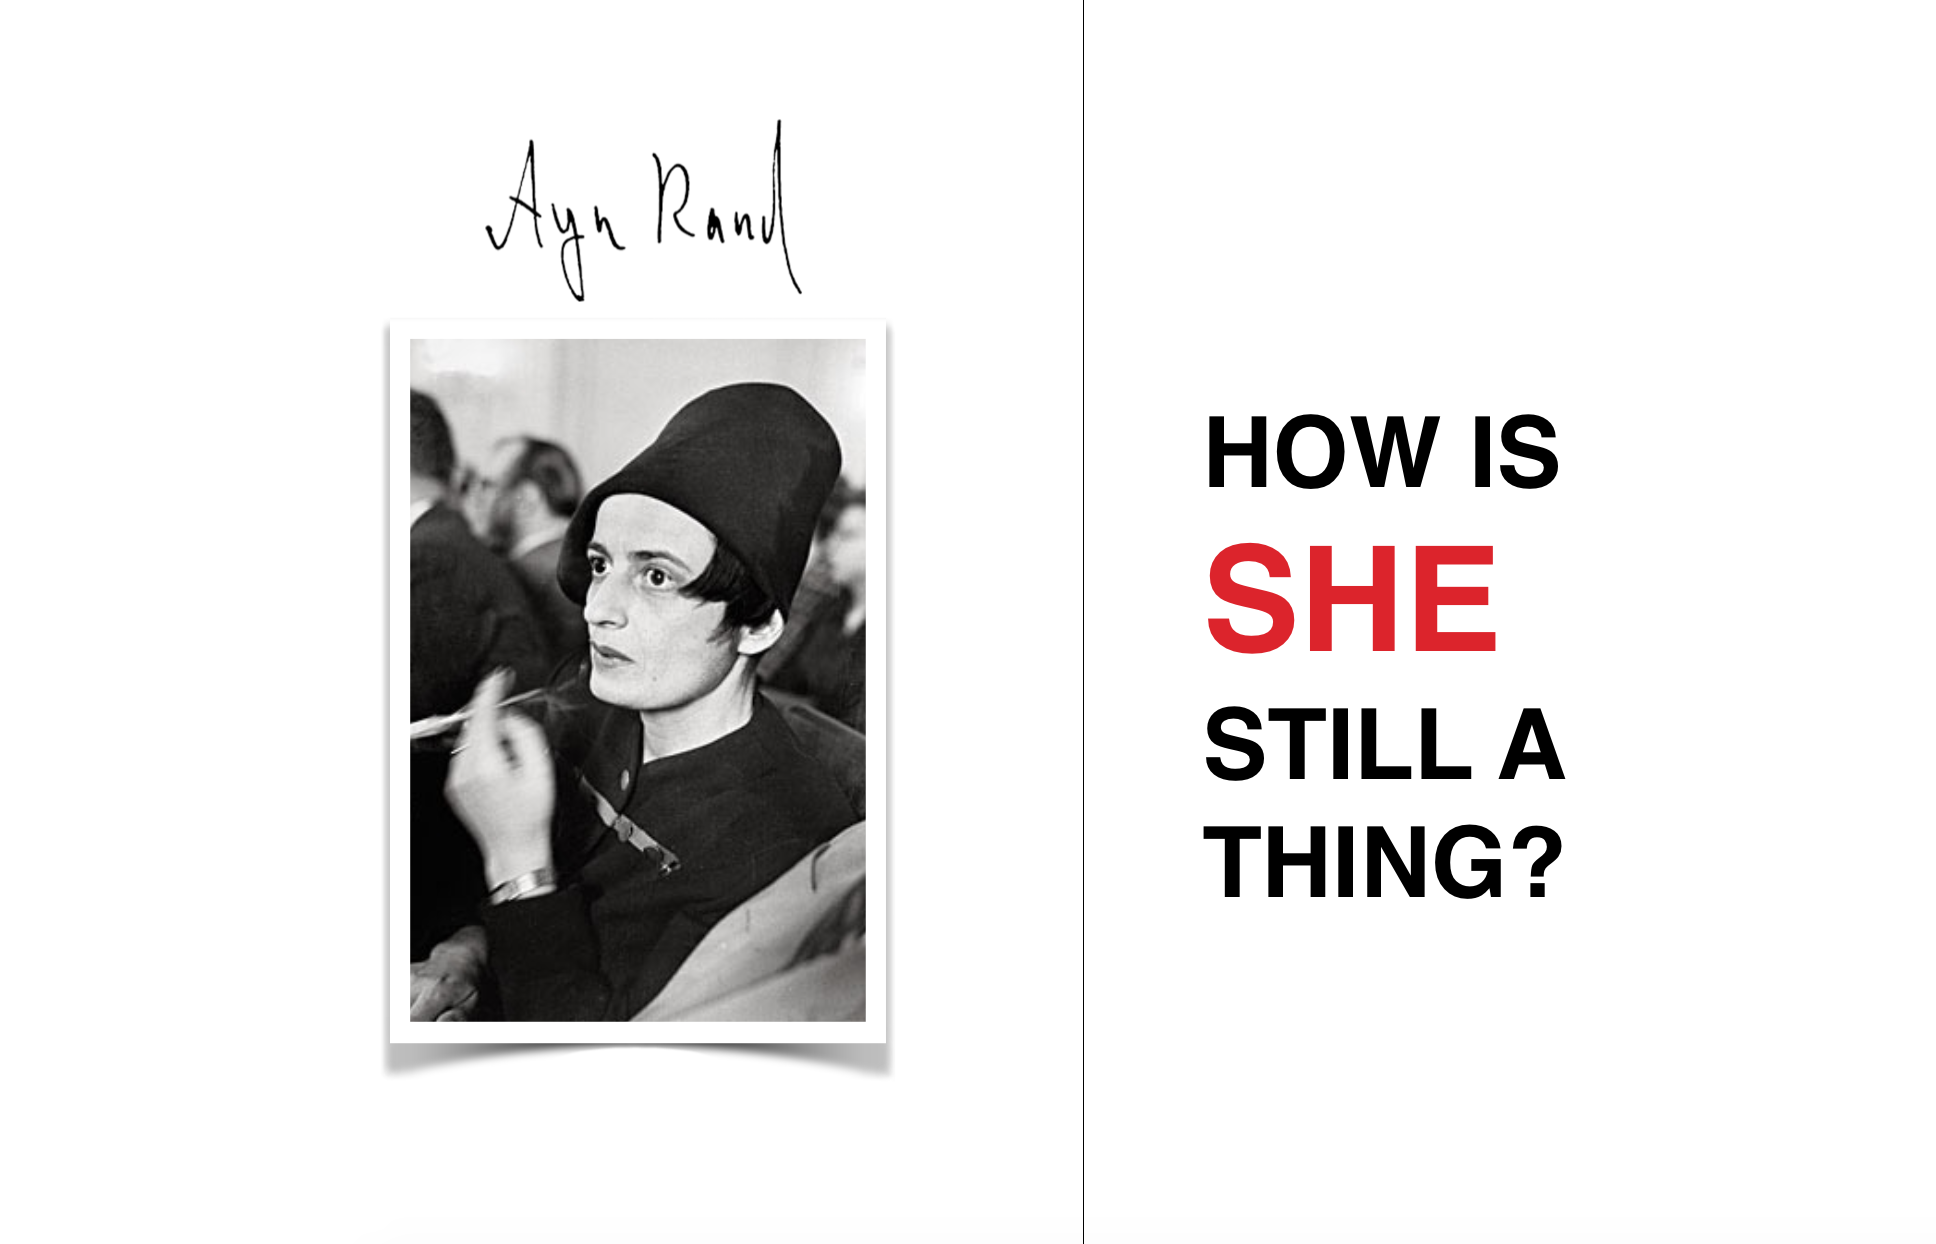 How is Ayn Rand still a thing? From ridicule to serious concern